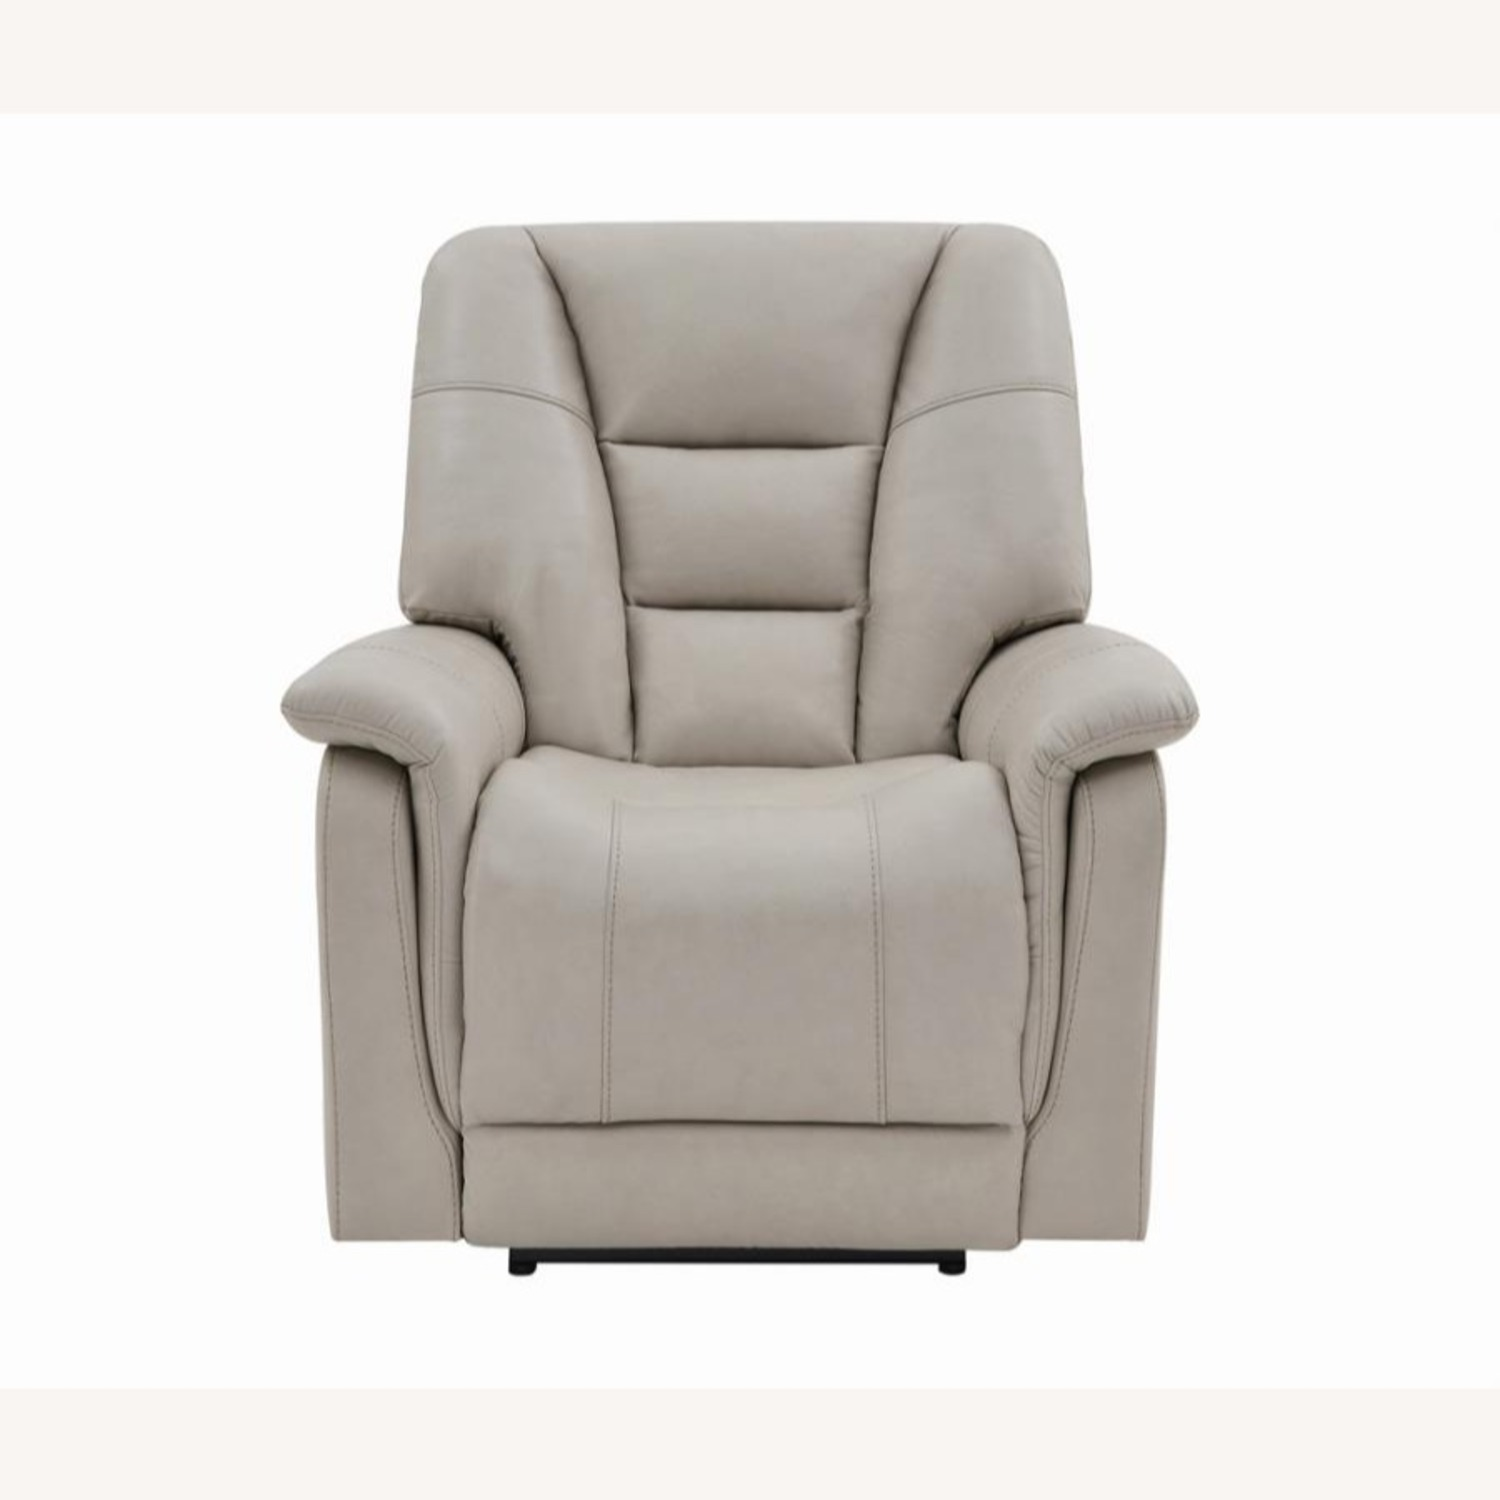 Power Recliner In Cream Top Grain Leather - image-2